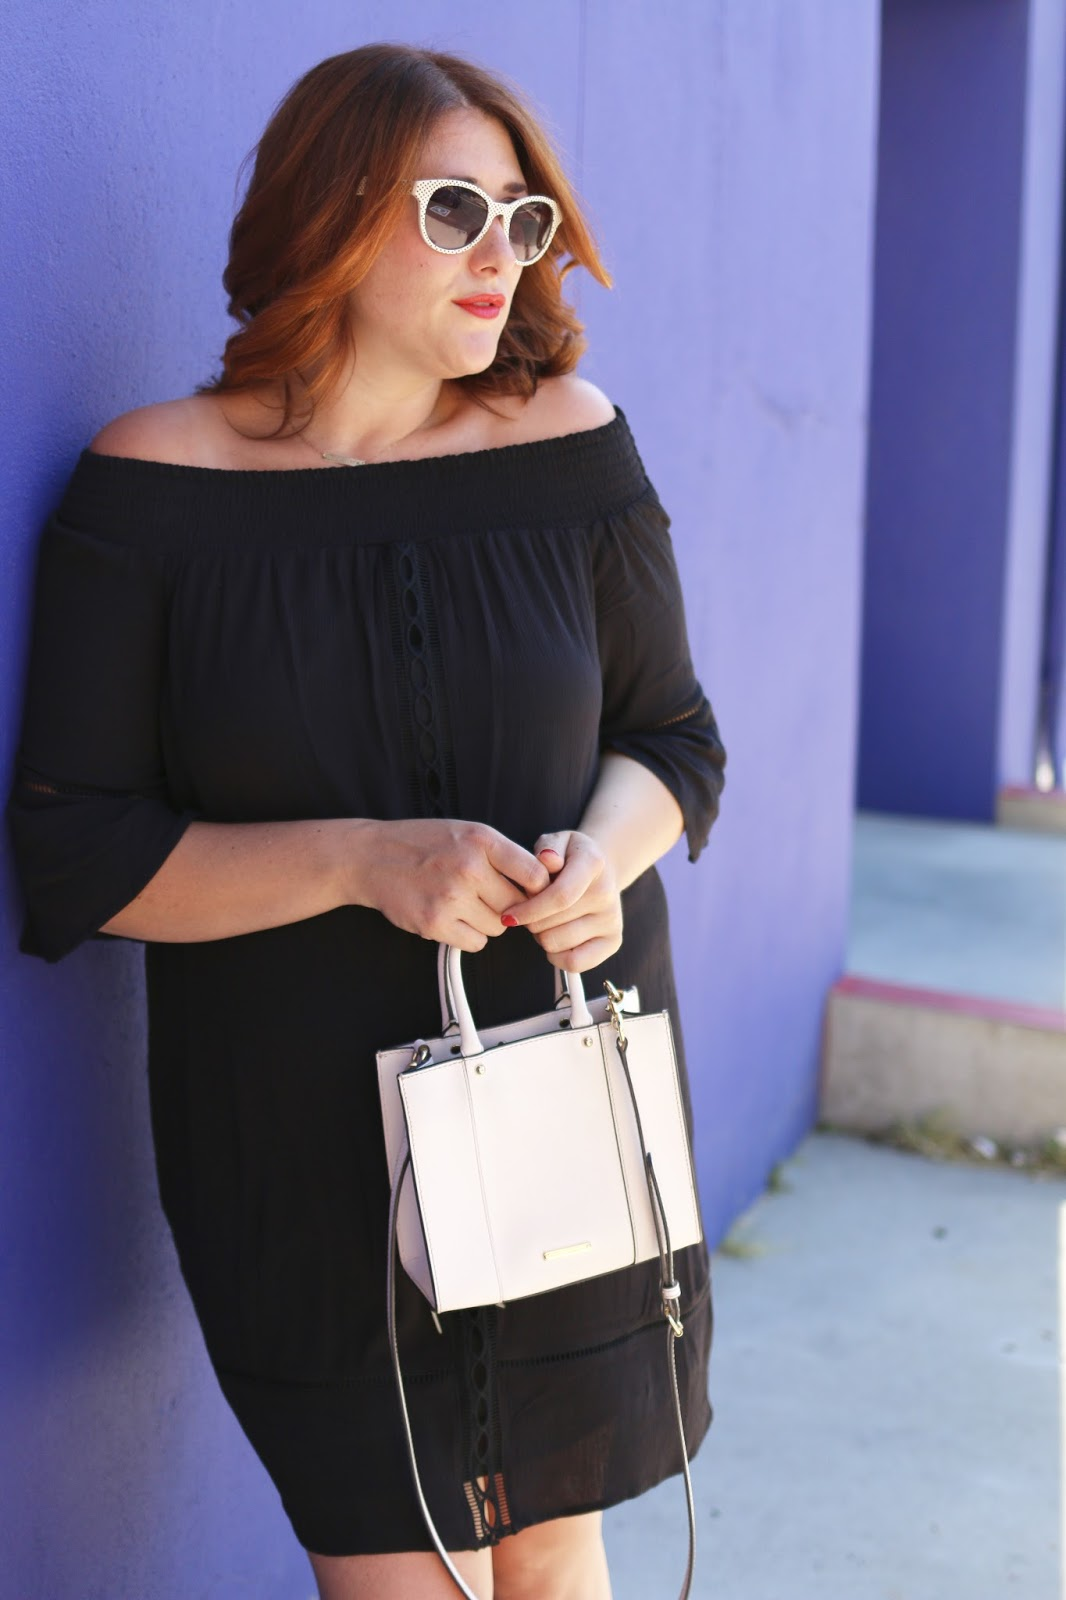 Target, mossimo, off the shoulder, black dress, summer outfit, mini MAC minkoff